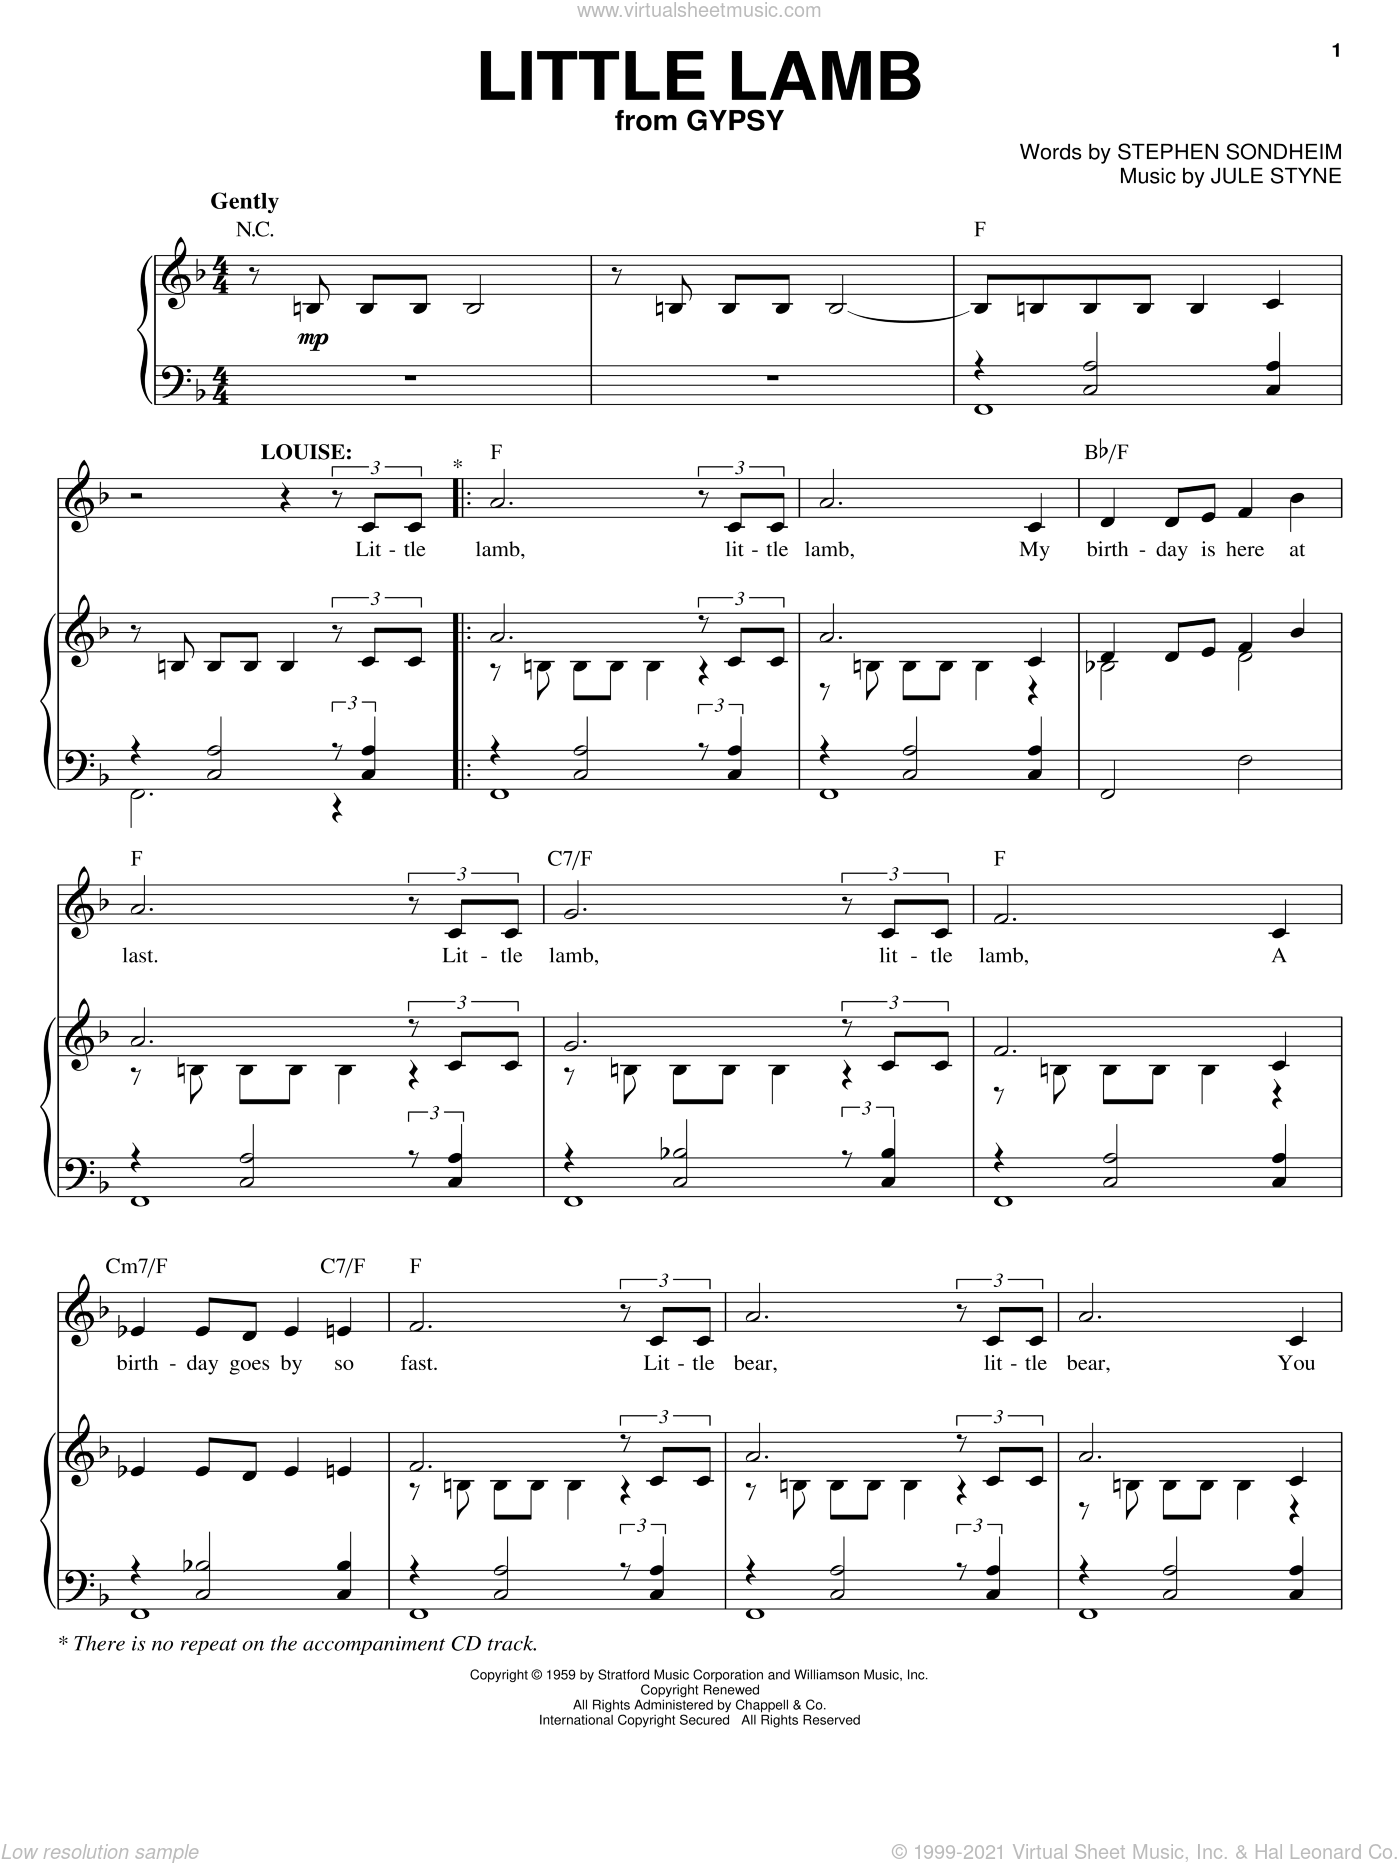 Little Lamb sheet music for voice and piano by Jule Styne